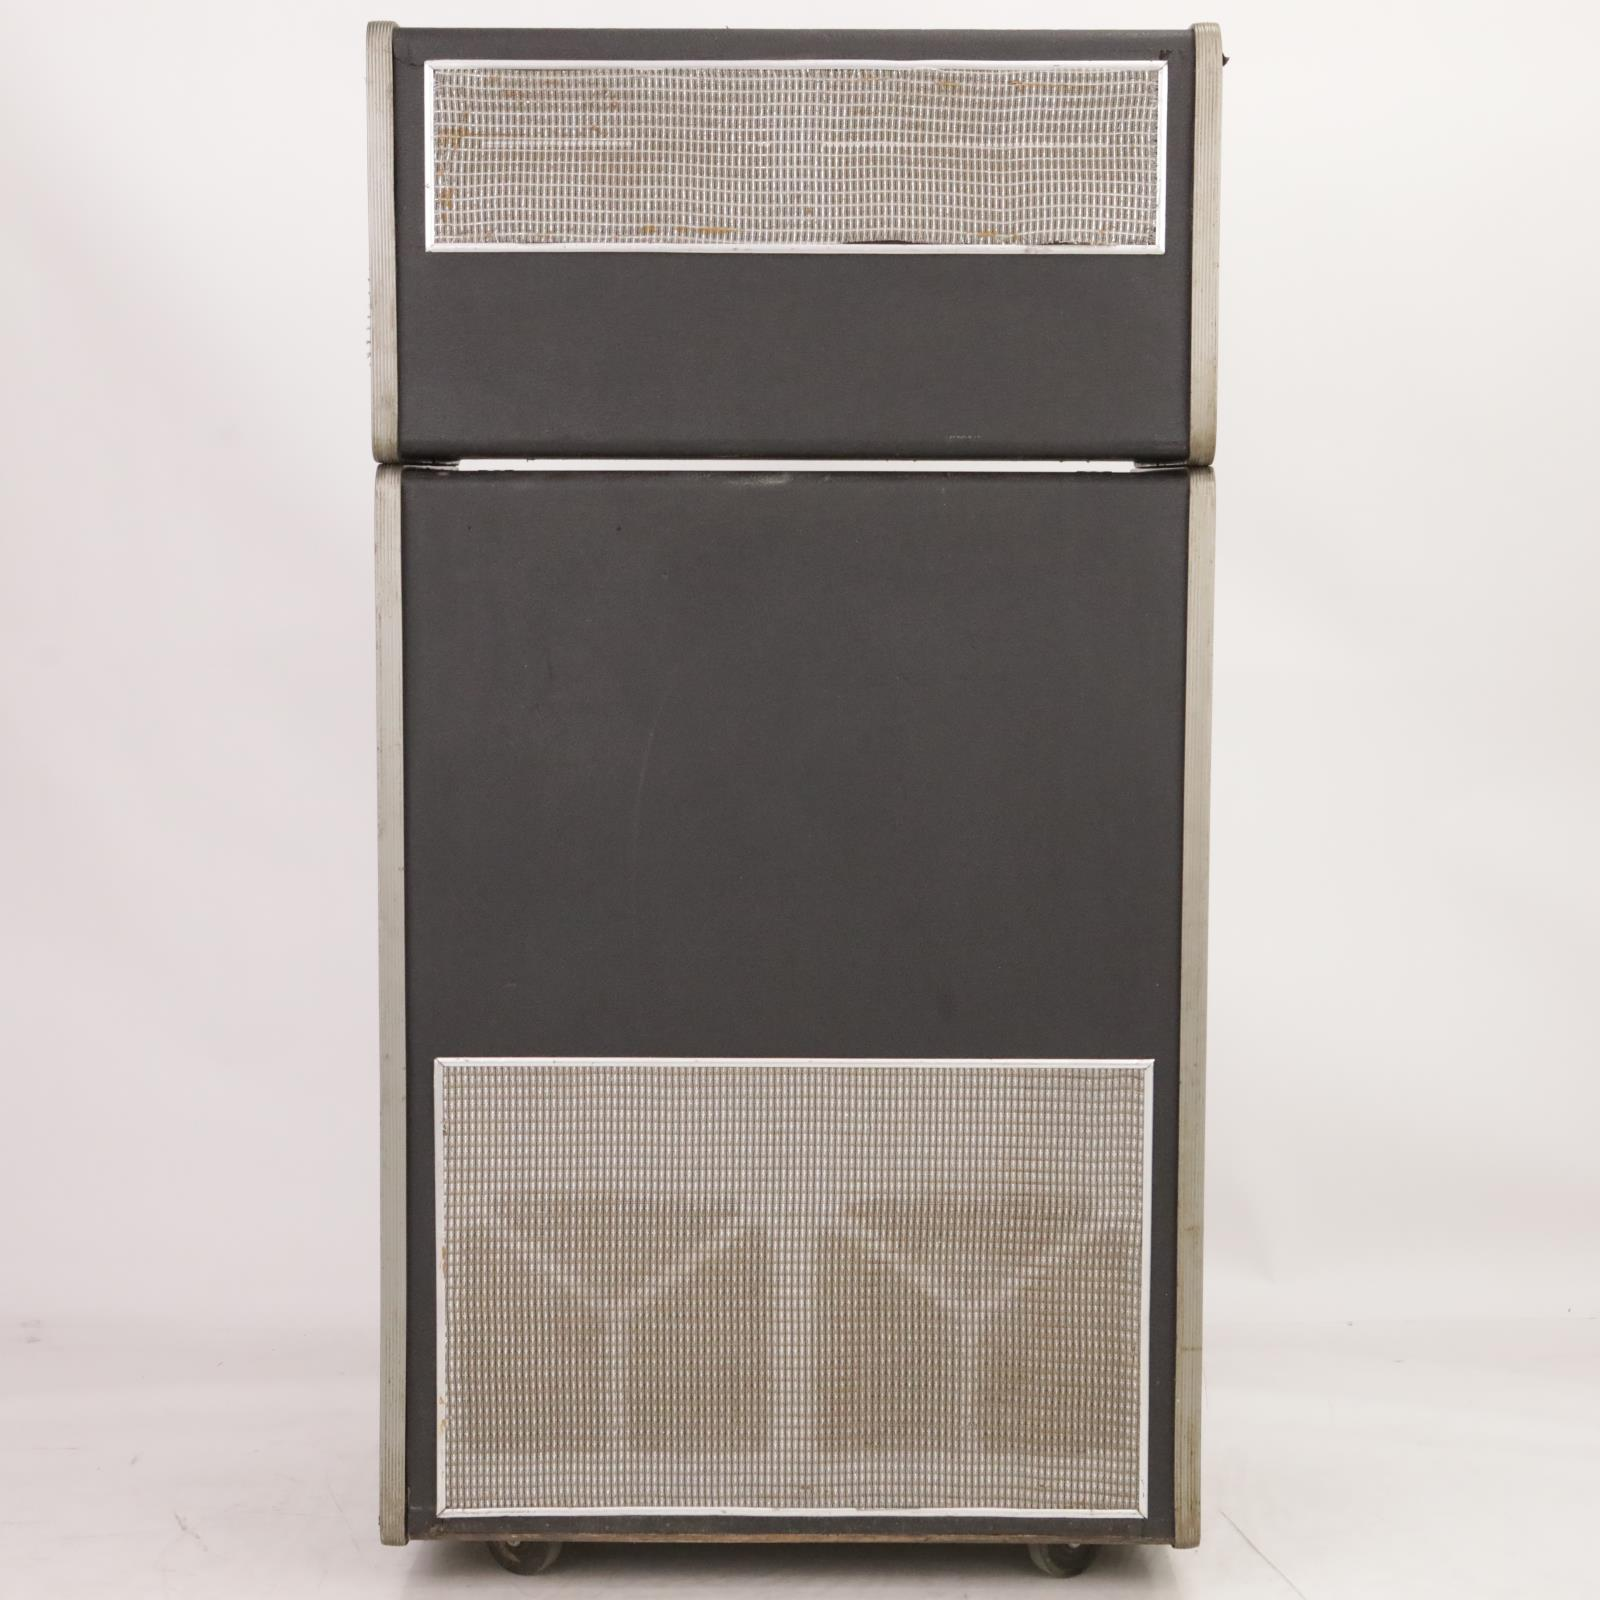 Leslie 900 Top & Bottom Organ Rotary Speaker Cabinet #37396